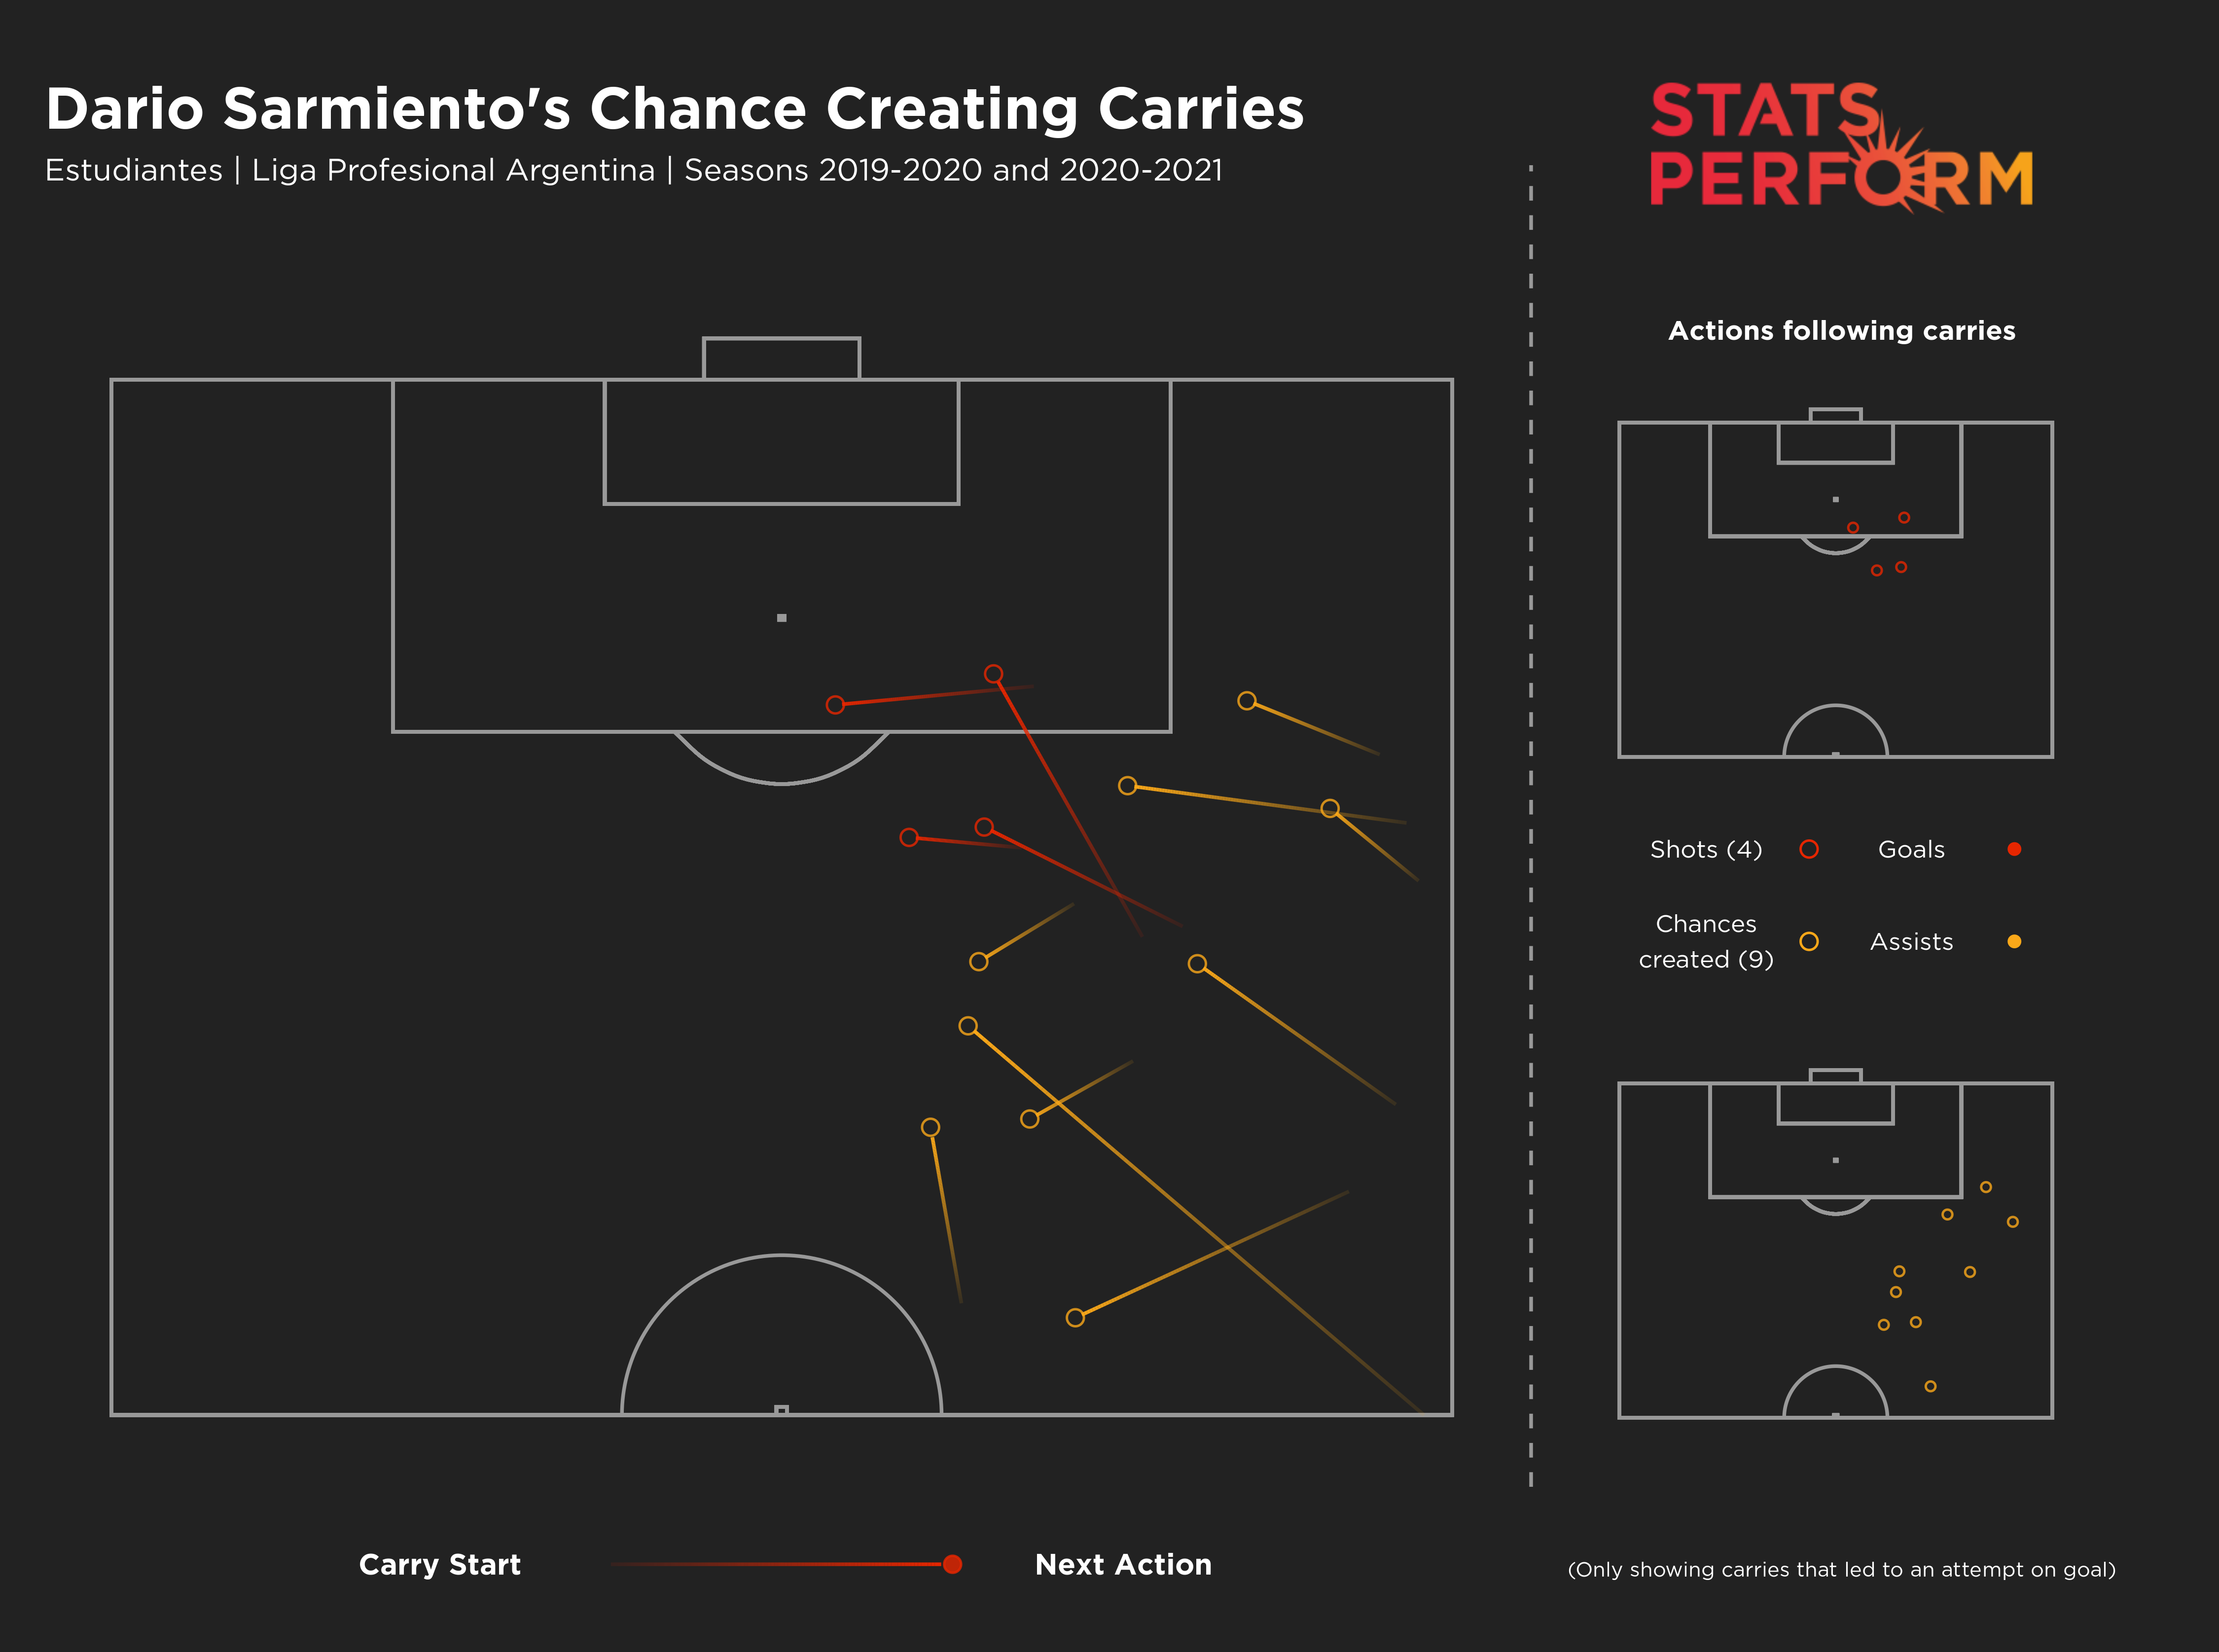 Dario Sarmiento's chance creating carries for Estudiantes since the start of the 2019-20 season